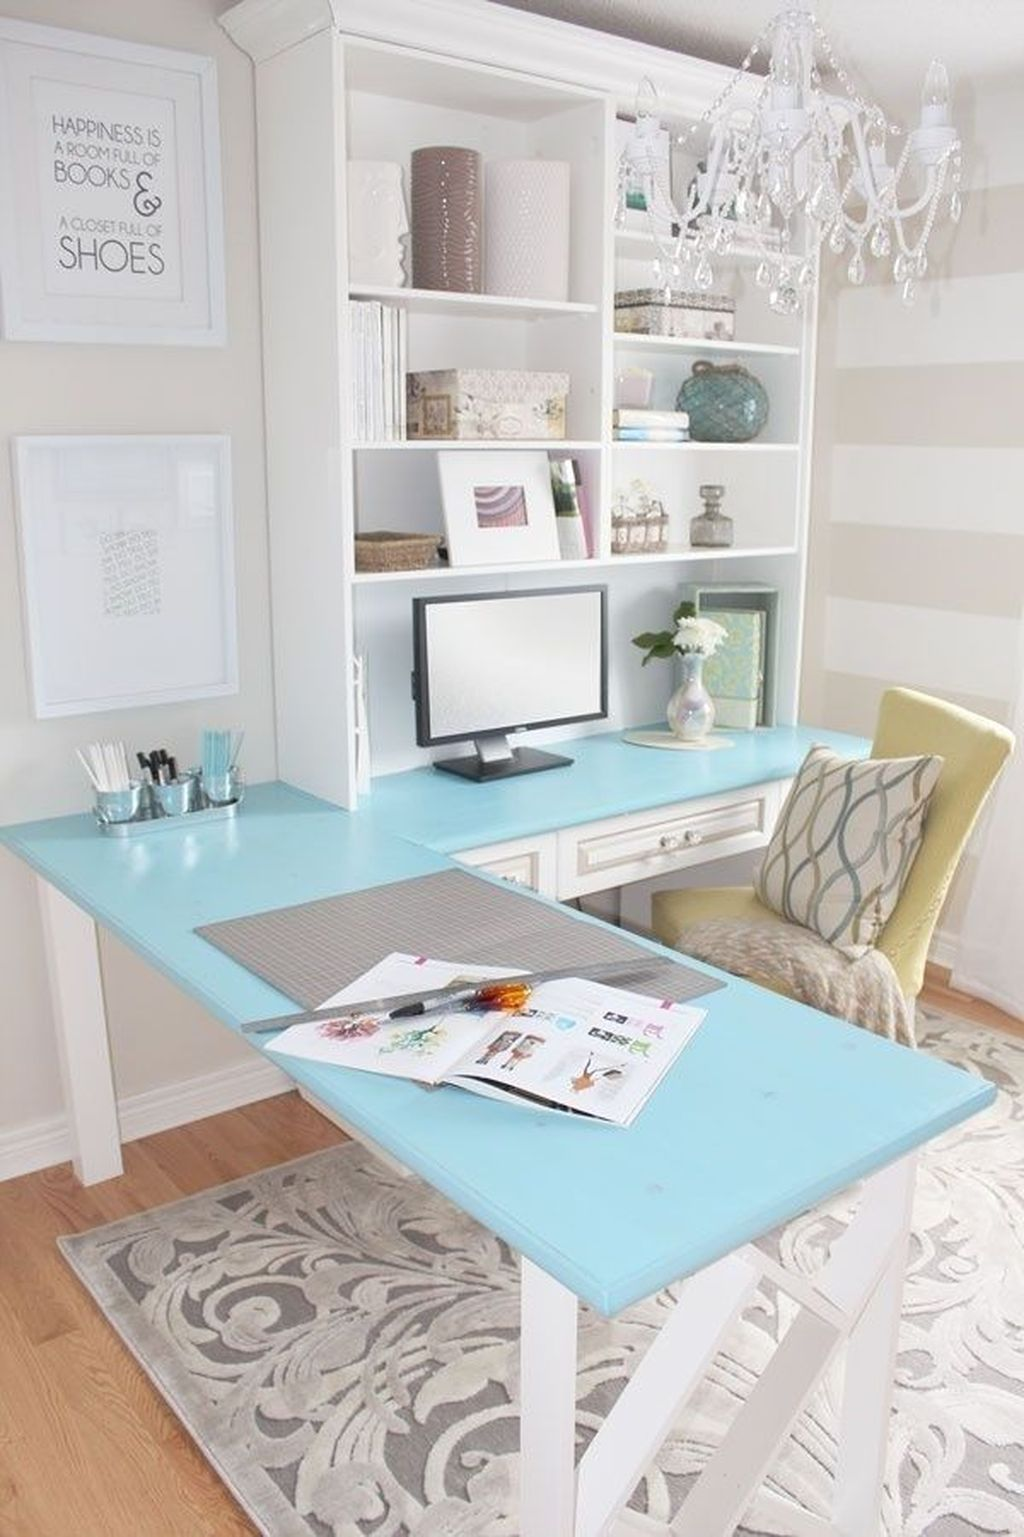 42+ Gorgeous Office Desk Ideas For Your Home | Homemade desk, Office ...